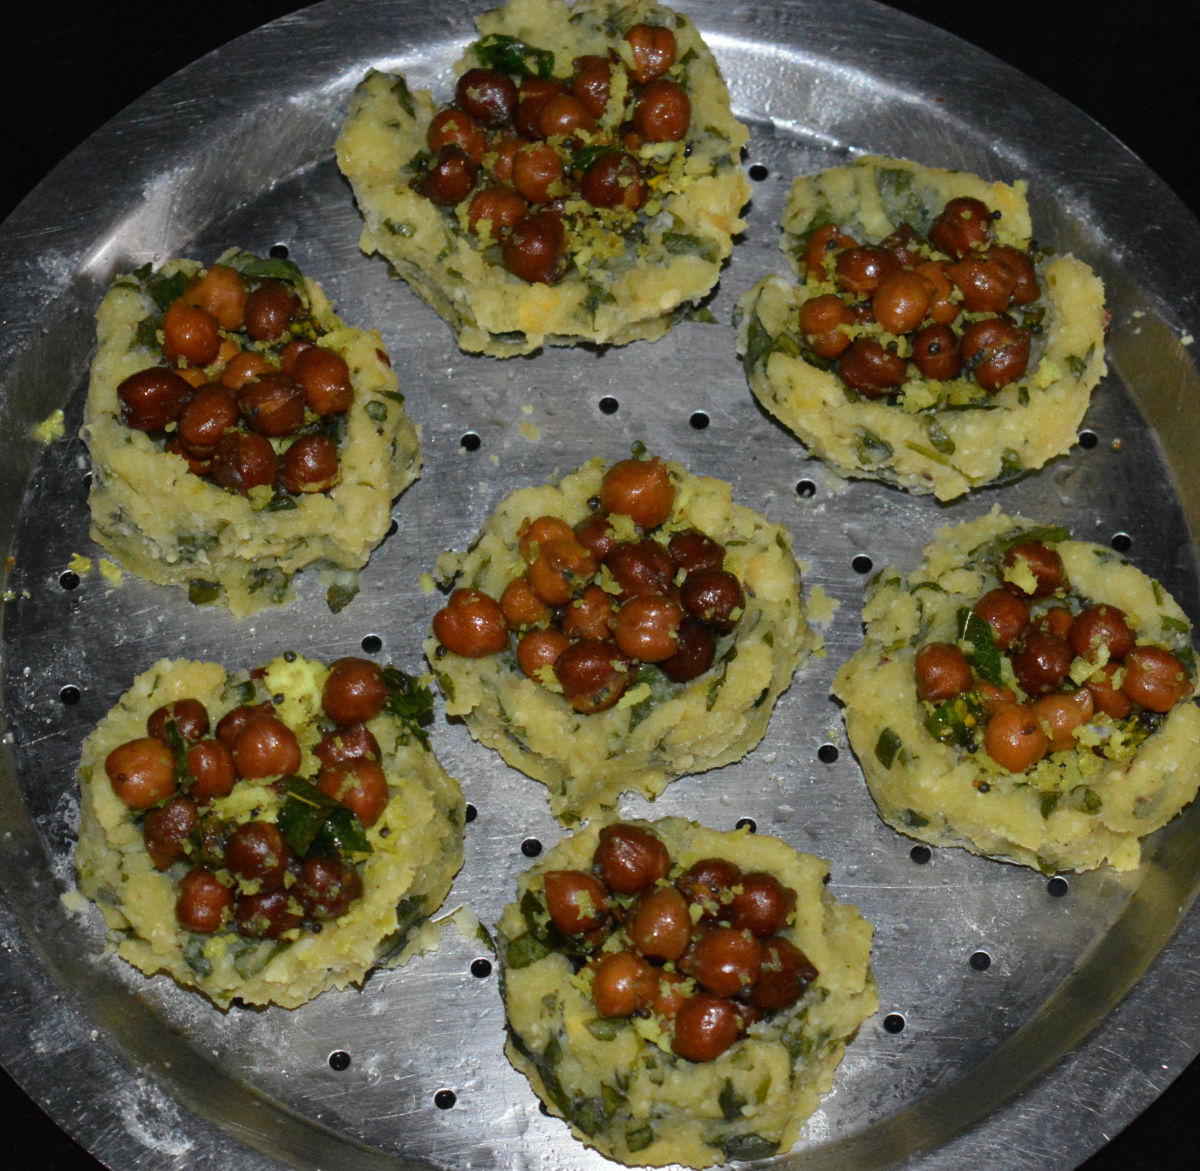 These black chickpea baskets are so flavorful that they don't require additional sauce or dressing.